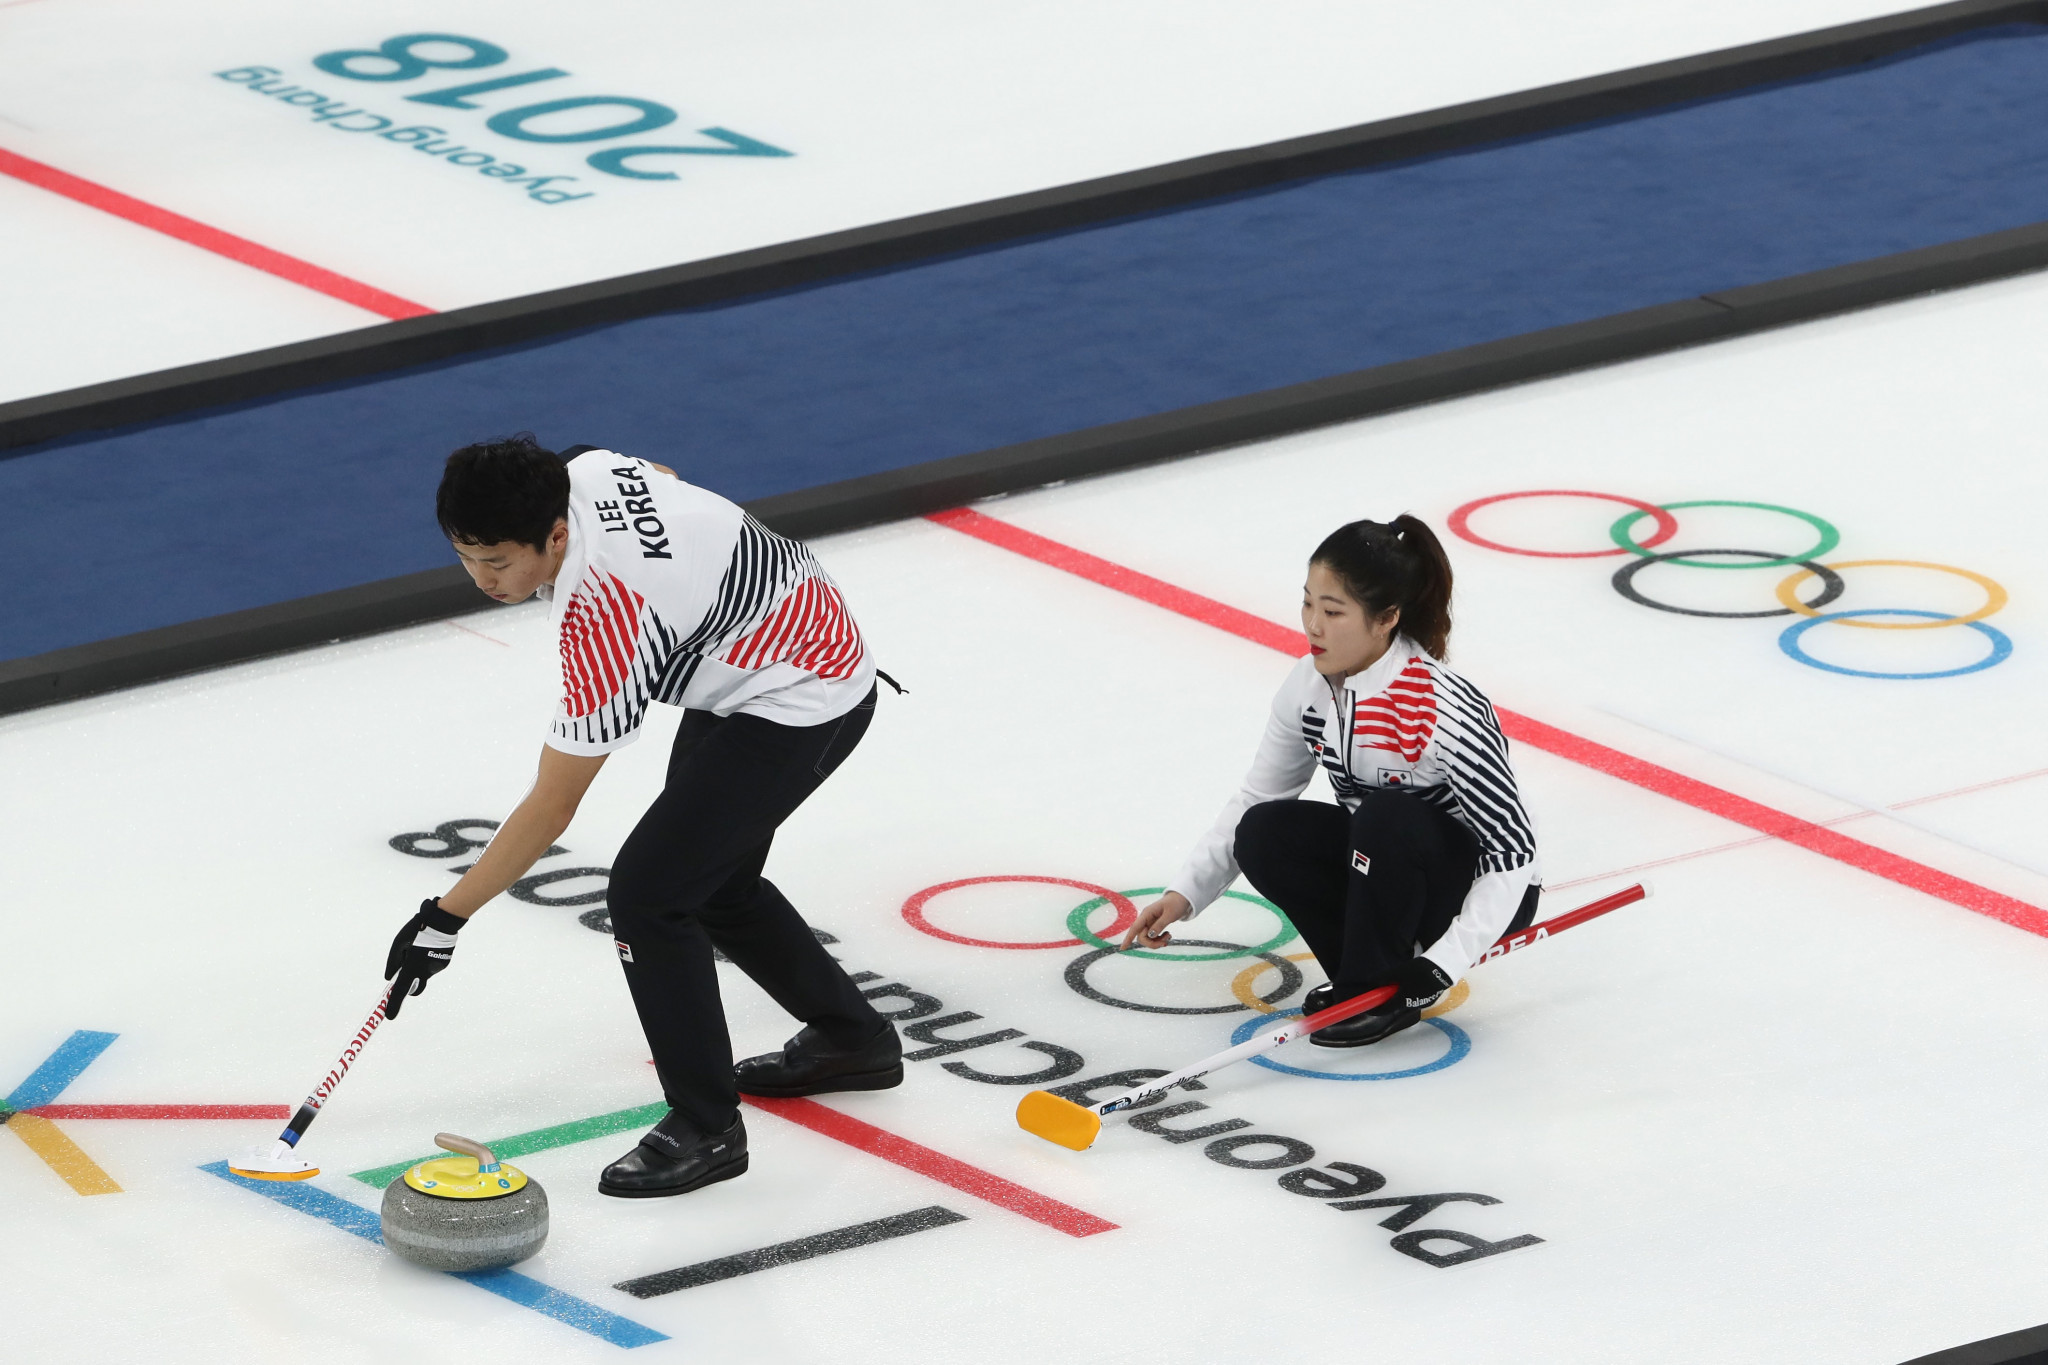 Former South Korean curling coach arrested on embezzlement charges